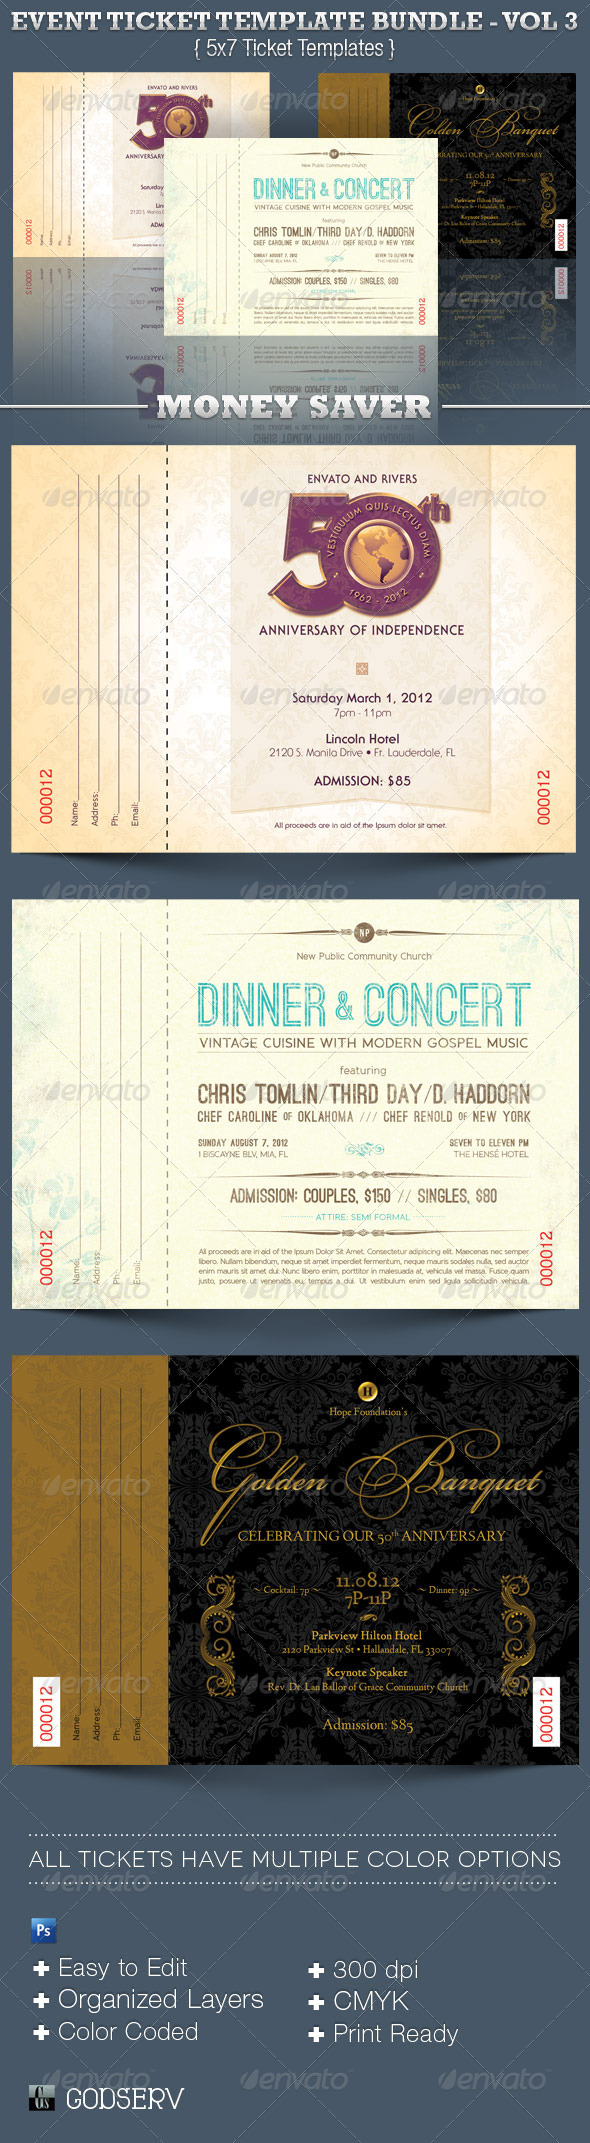 GraphicRiver Event Ticket Template Bundle Volume 3 3604864